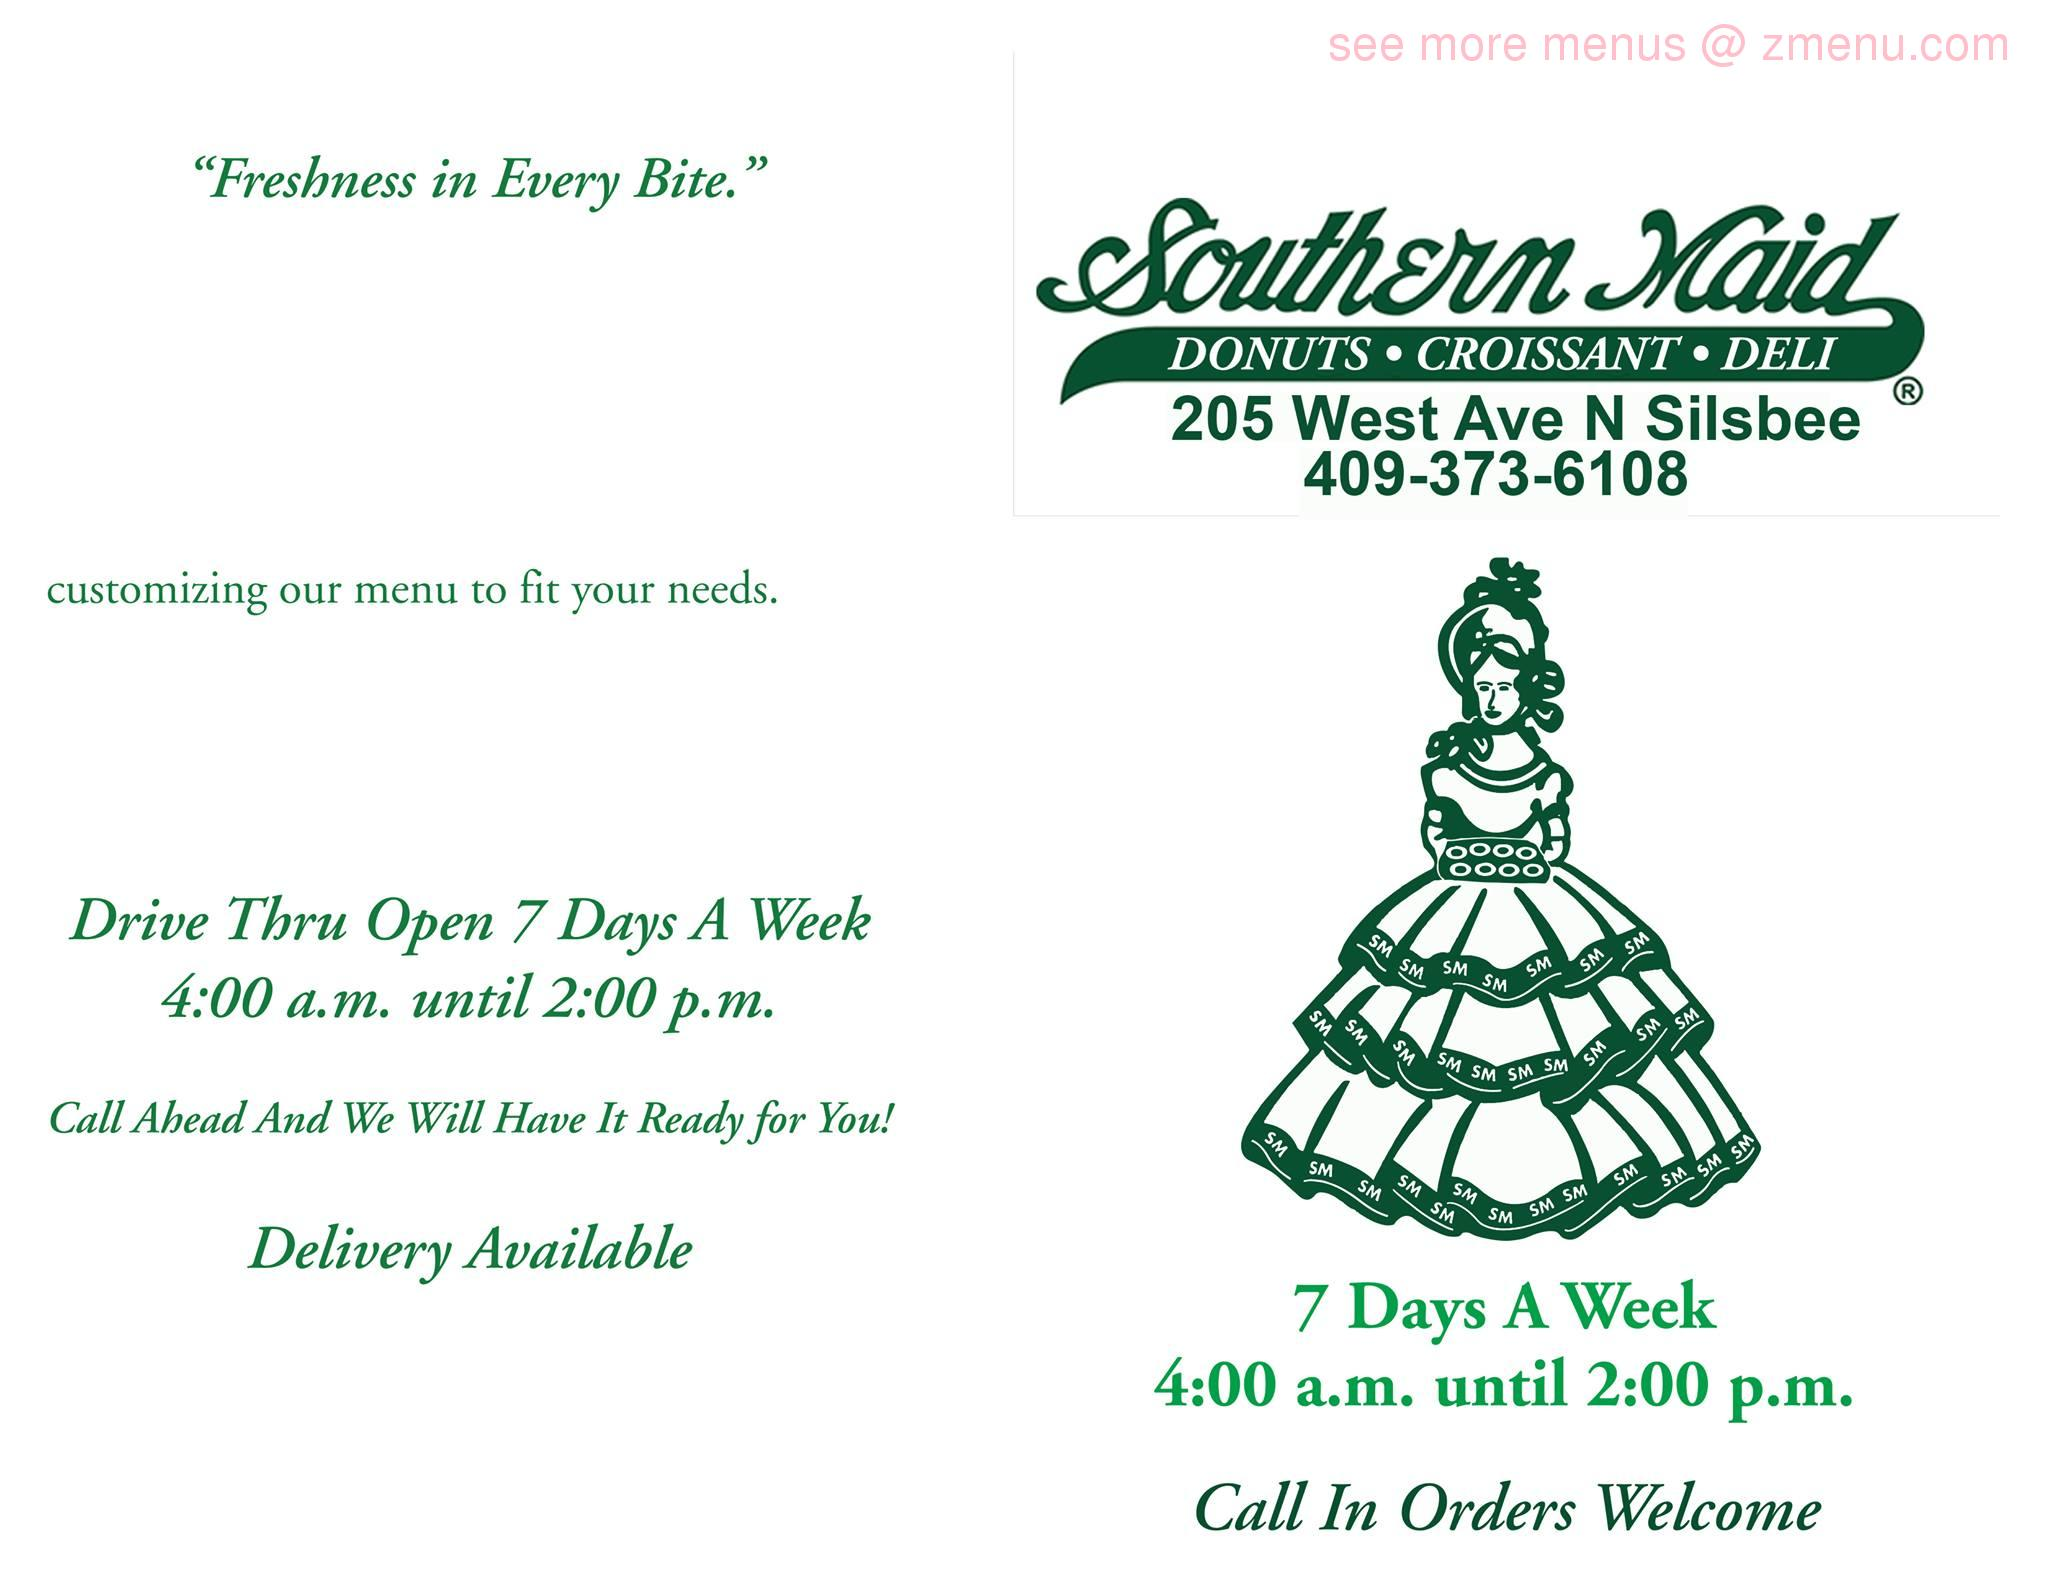 online menu of southern maid donuts restaurant silsbee texas